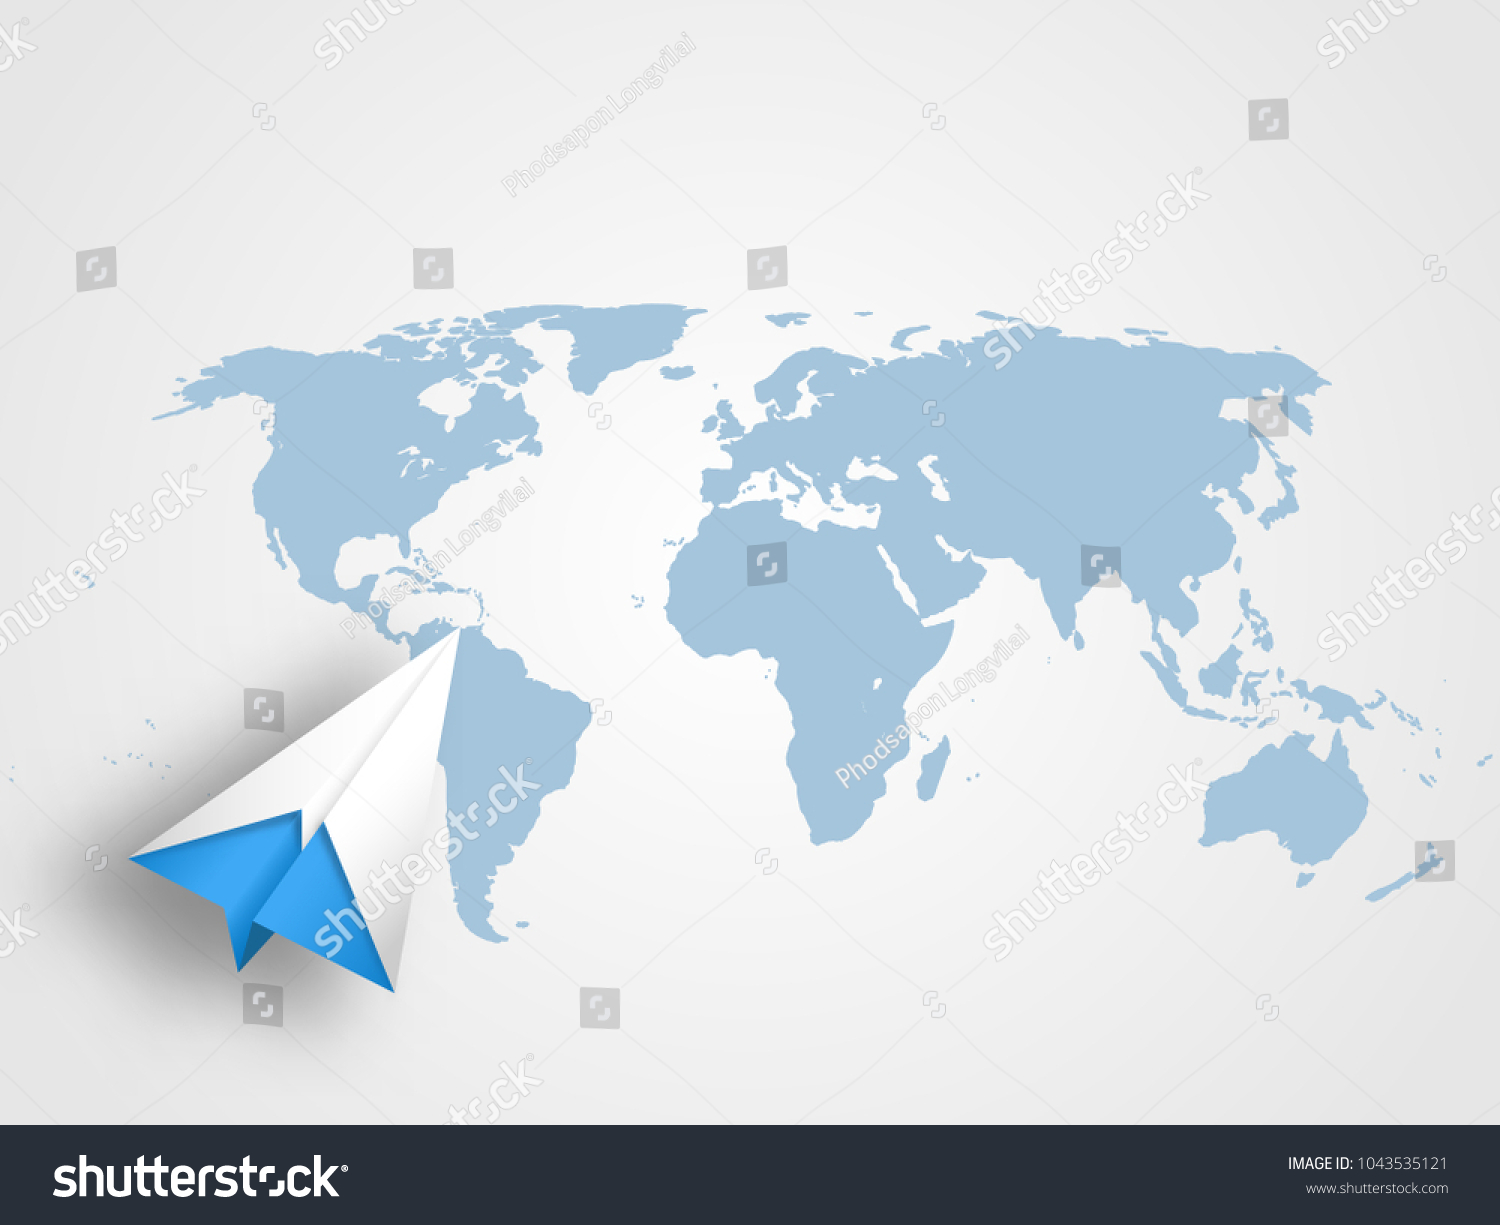 Origami airplane on world map background stock vector 1043535121 origami airplane on world map background stock vector 1043535121 shutterstock gumiabroncs Choice Image